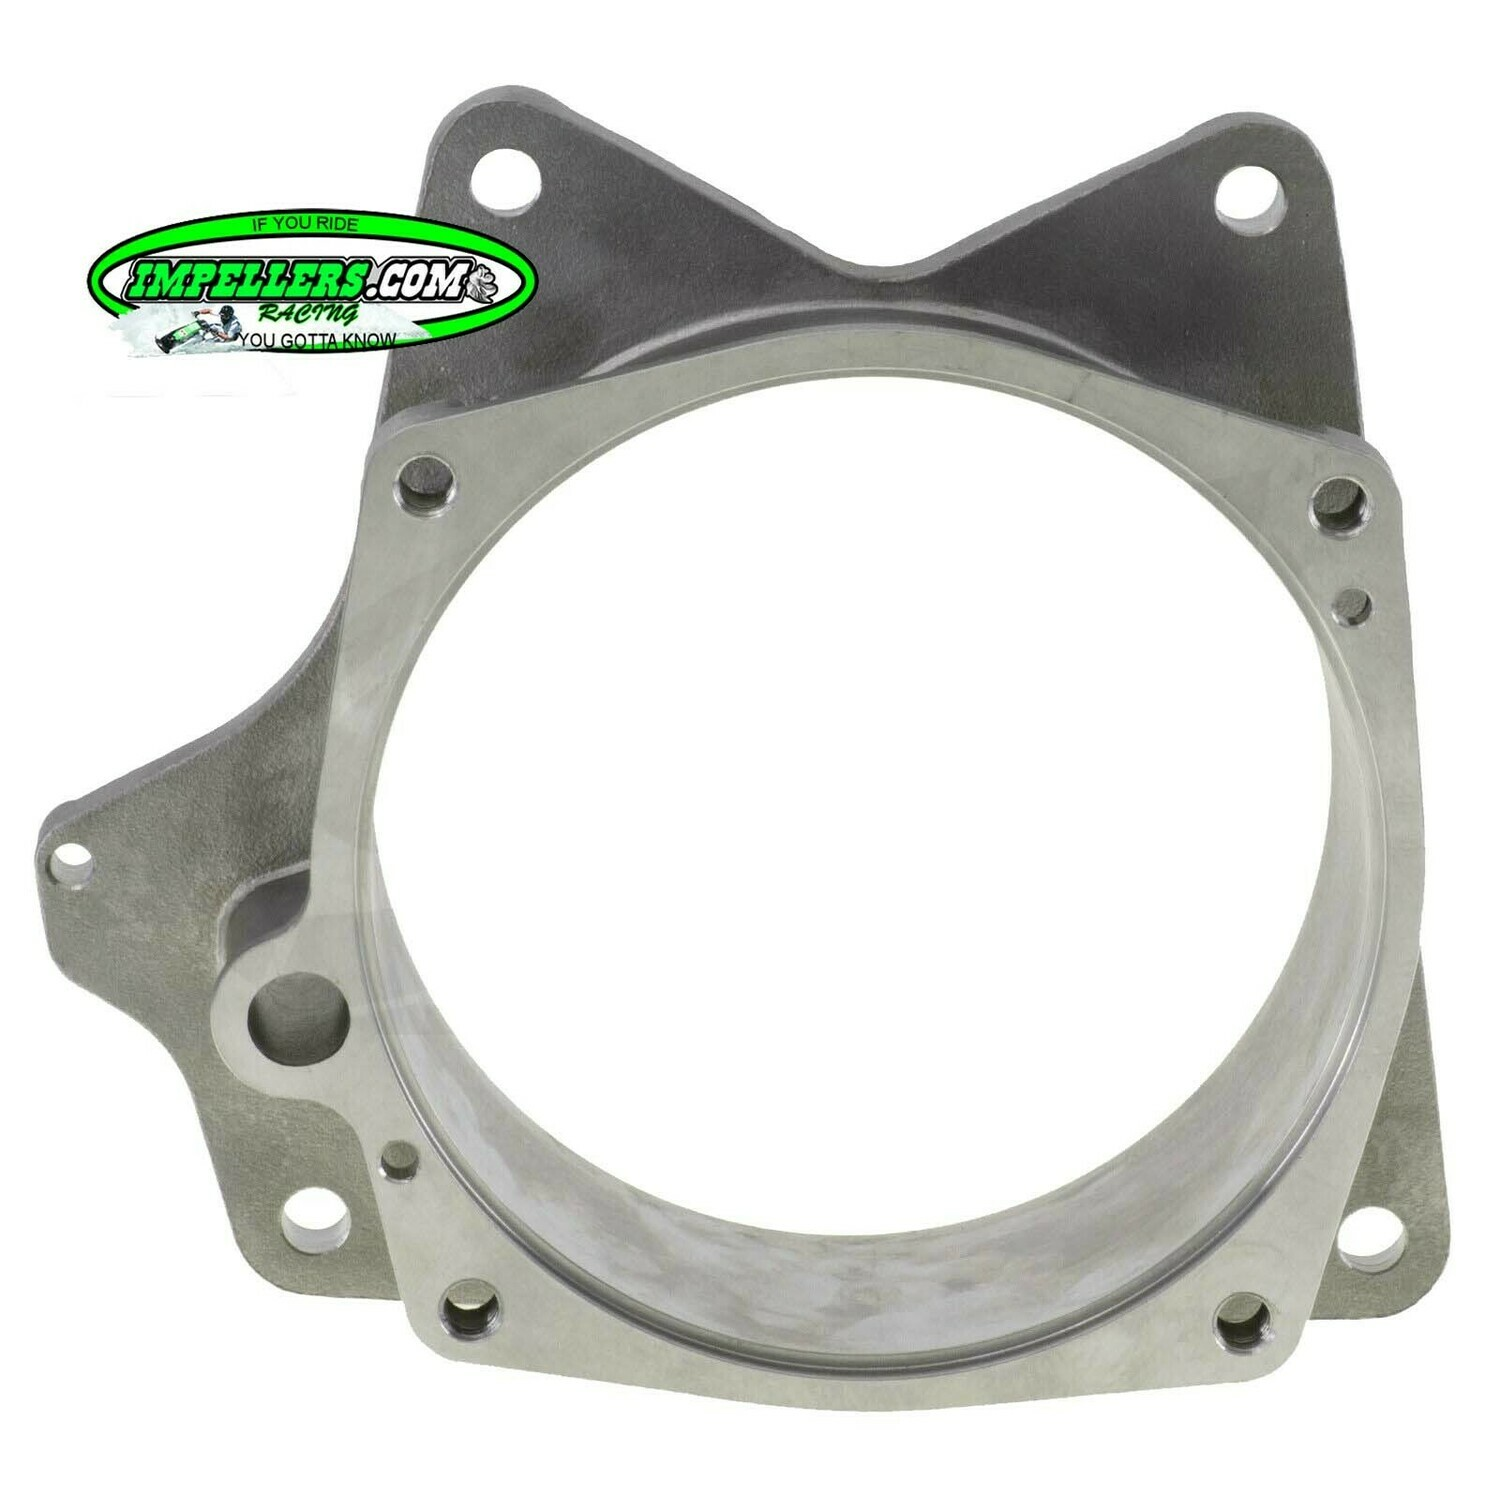 PRO HD 155mm impeller housing solid Stainless Yamaha Boat 4-Stroke